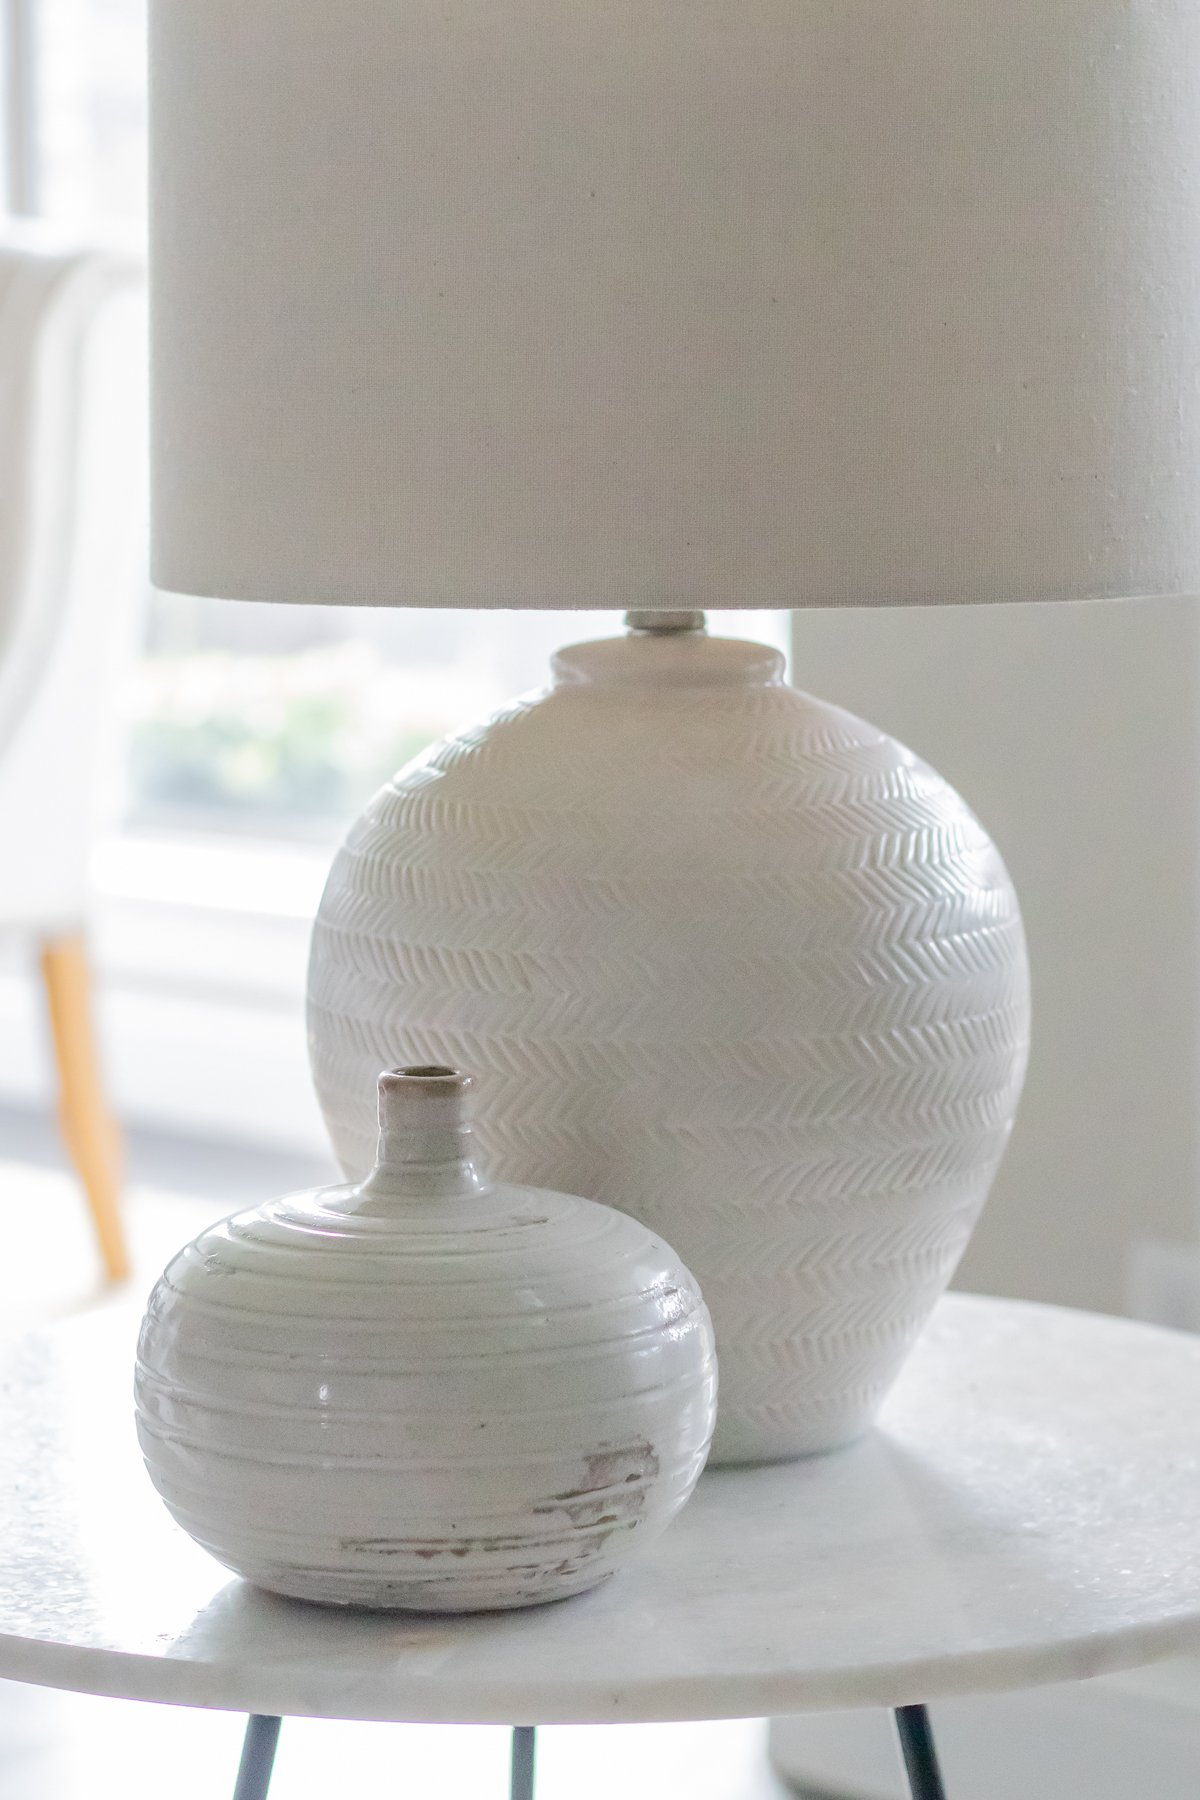 Fall decorating ideas - texture home decors - lamps and vases